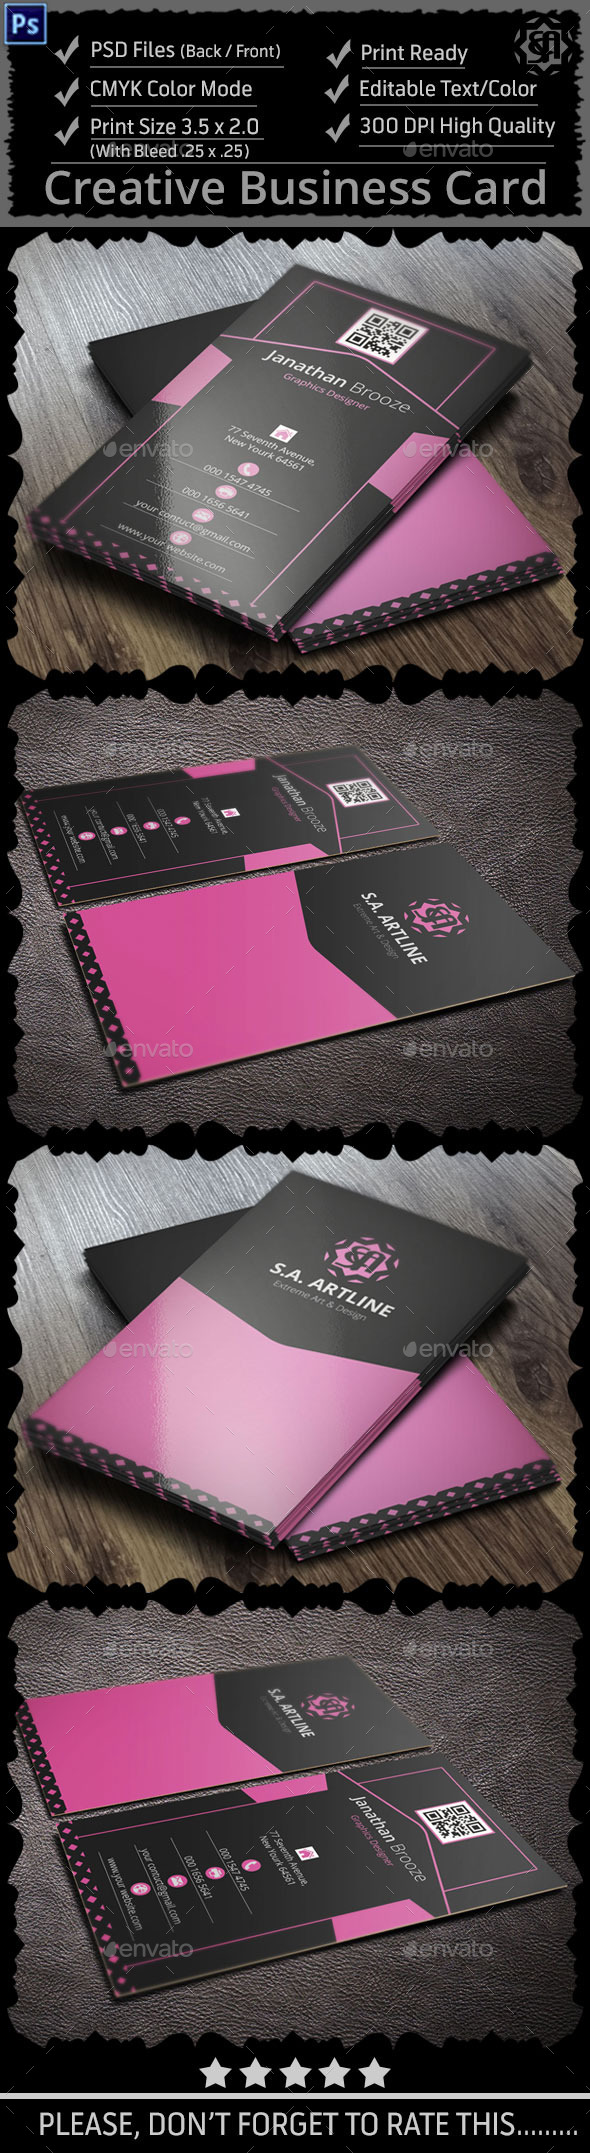 Cleat Creative Corporate Business Card - Creative Business Cards